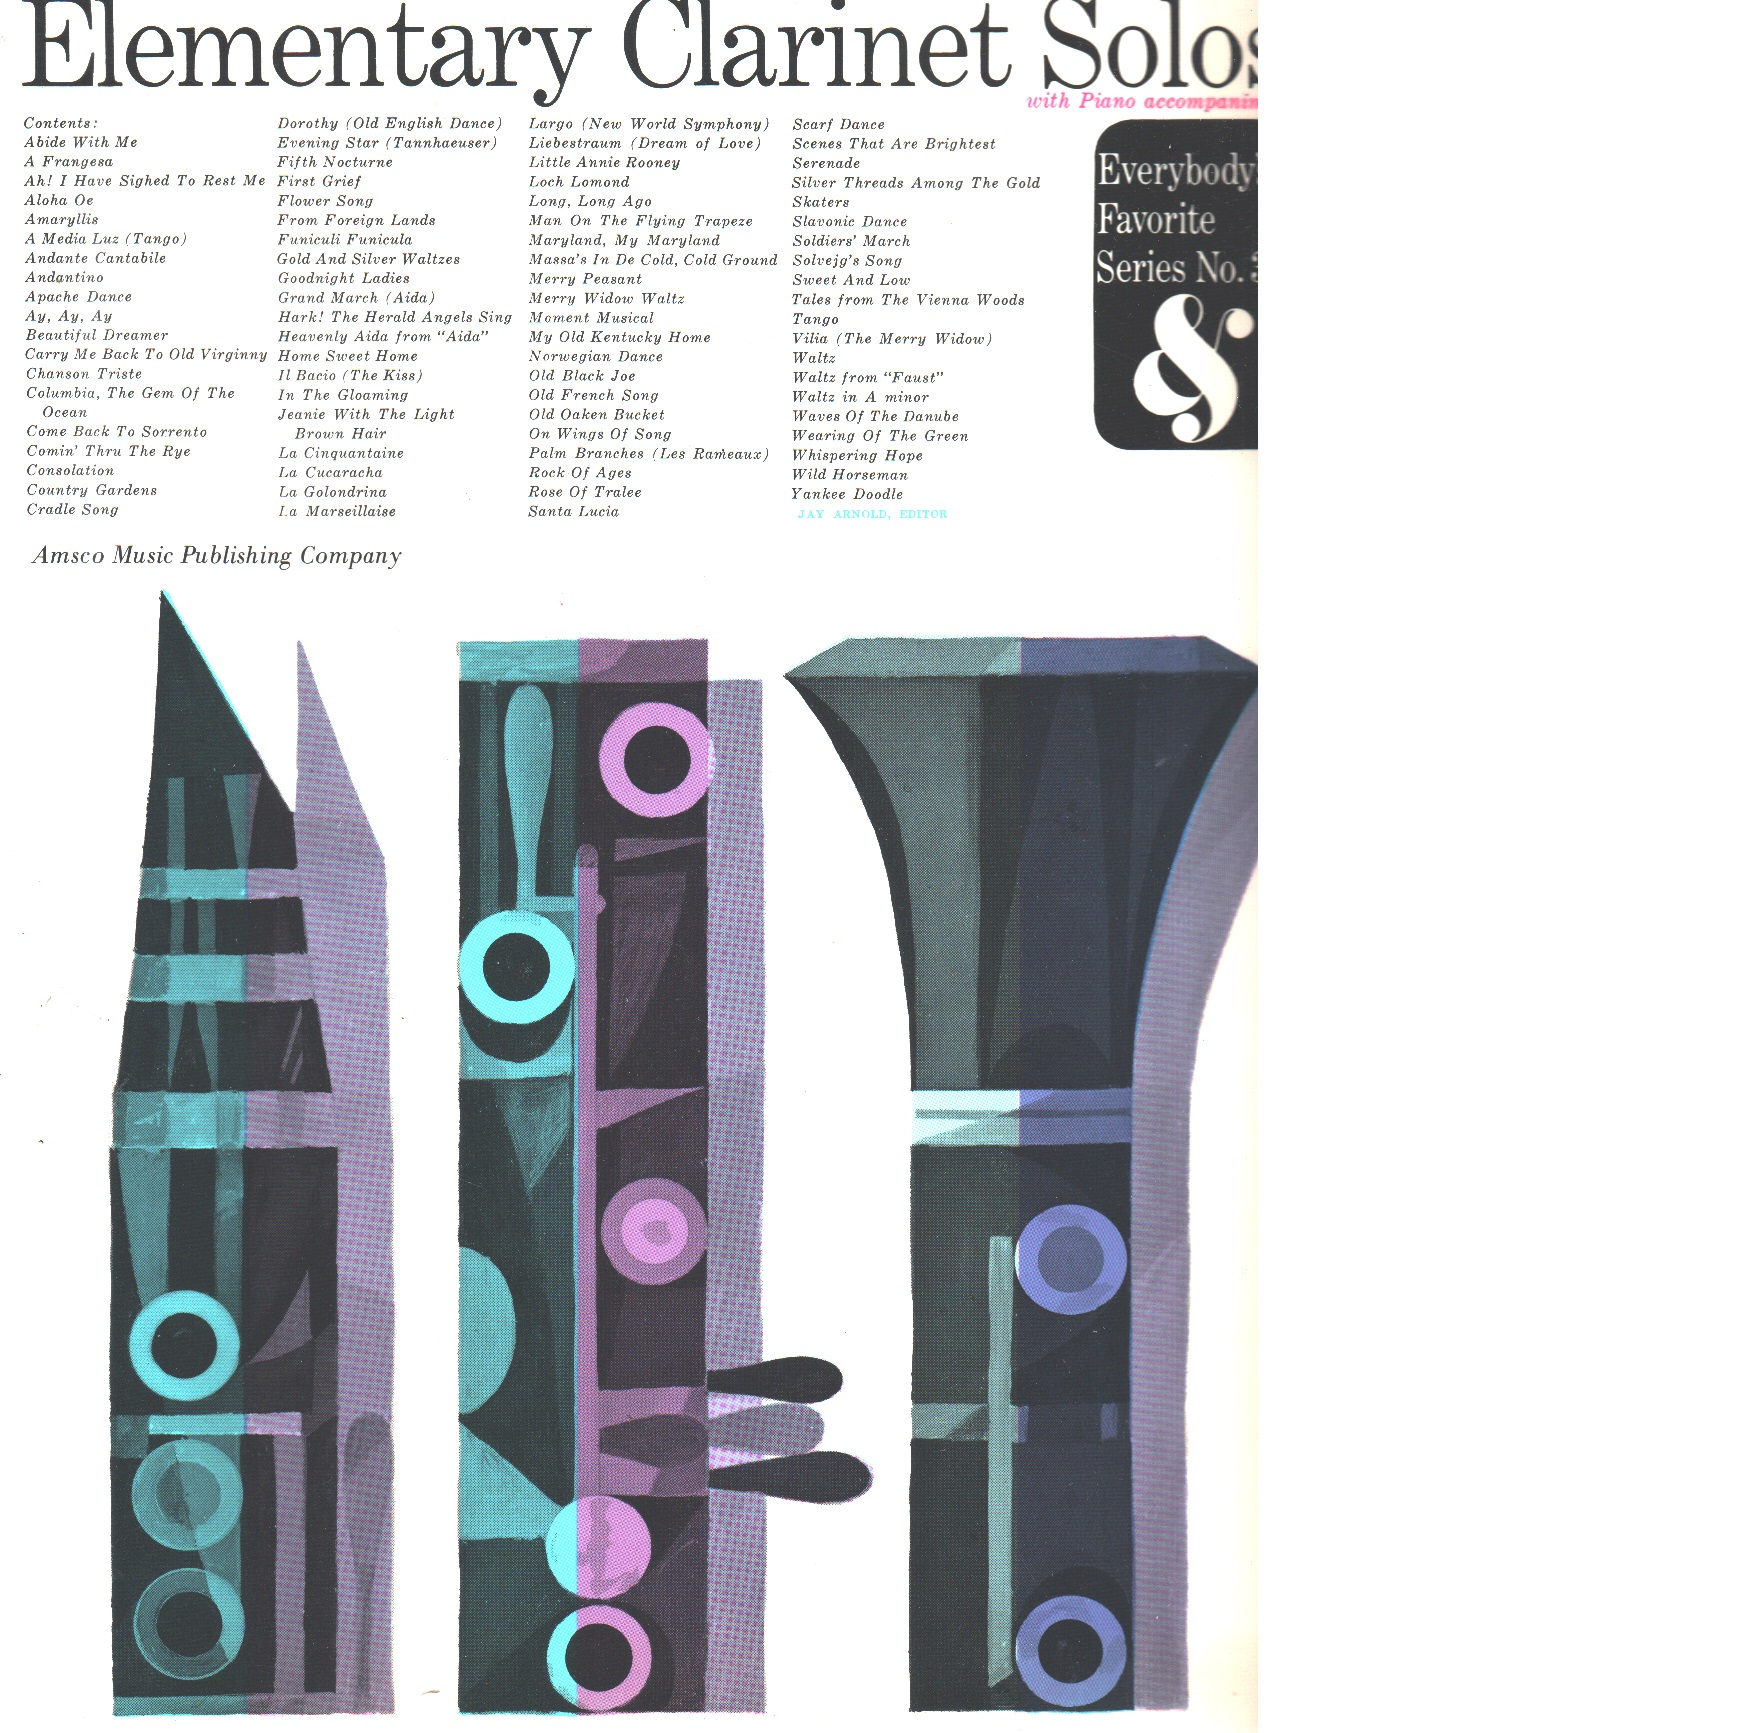 Elementary Clarinet Solos: Everybody's Favorite Series, Volym 33 - Red.